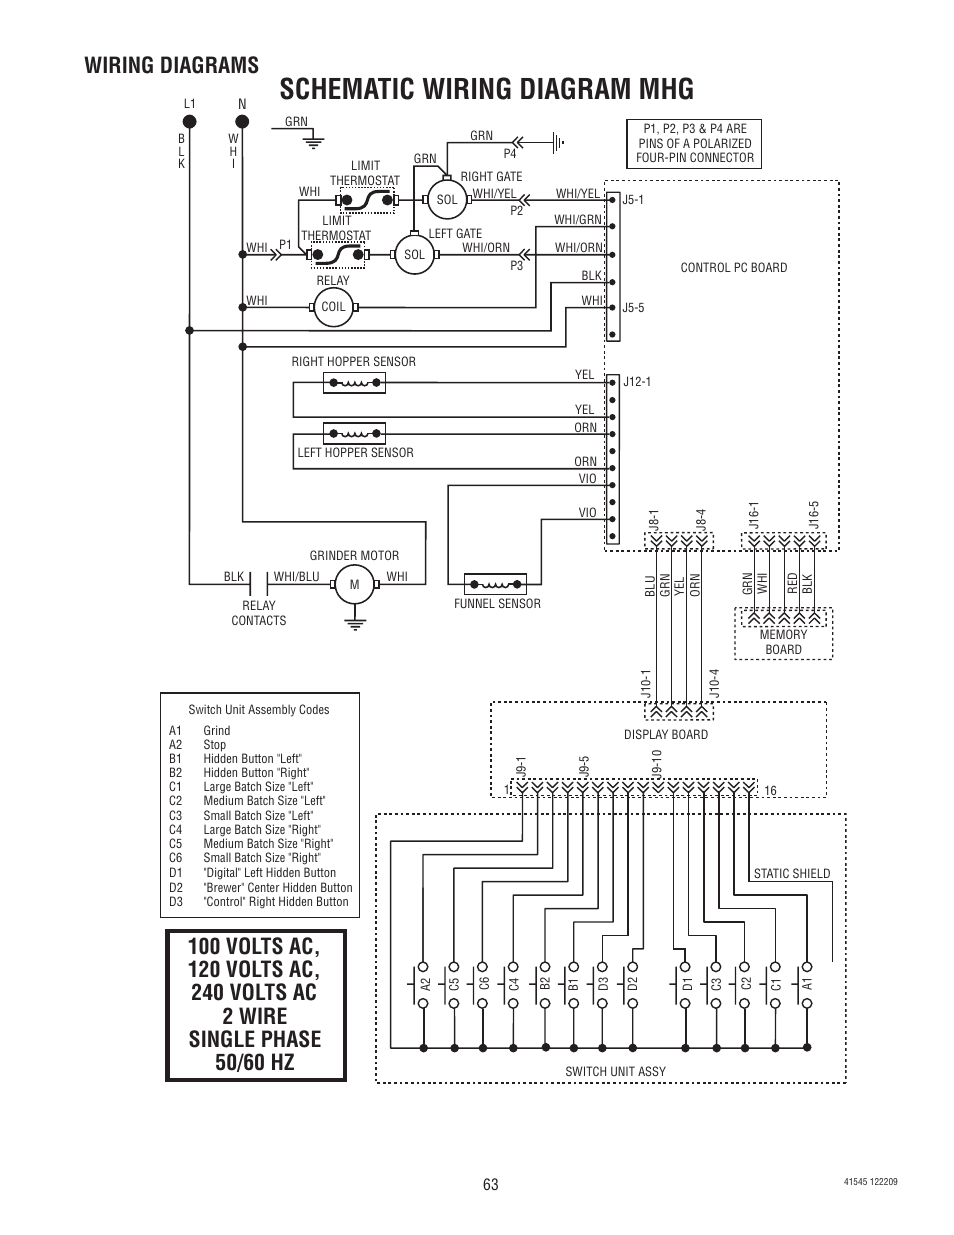 bunn wiring diagram wiring schematic diagram 37 pandoracharms co Braun Wiring Diagram